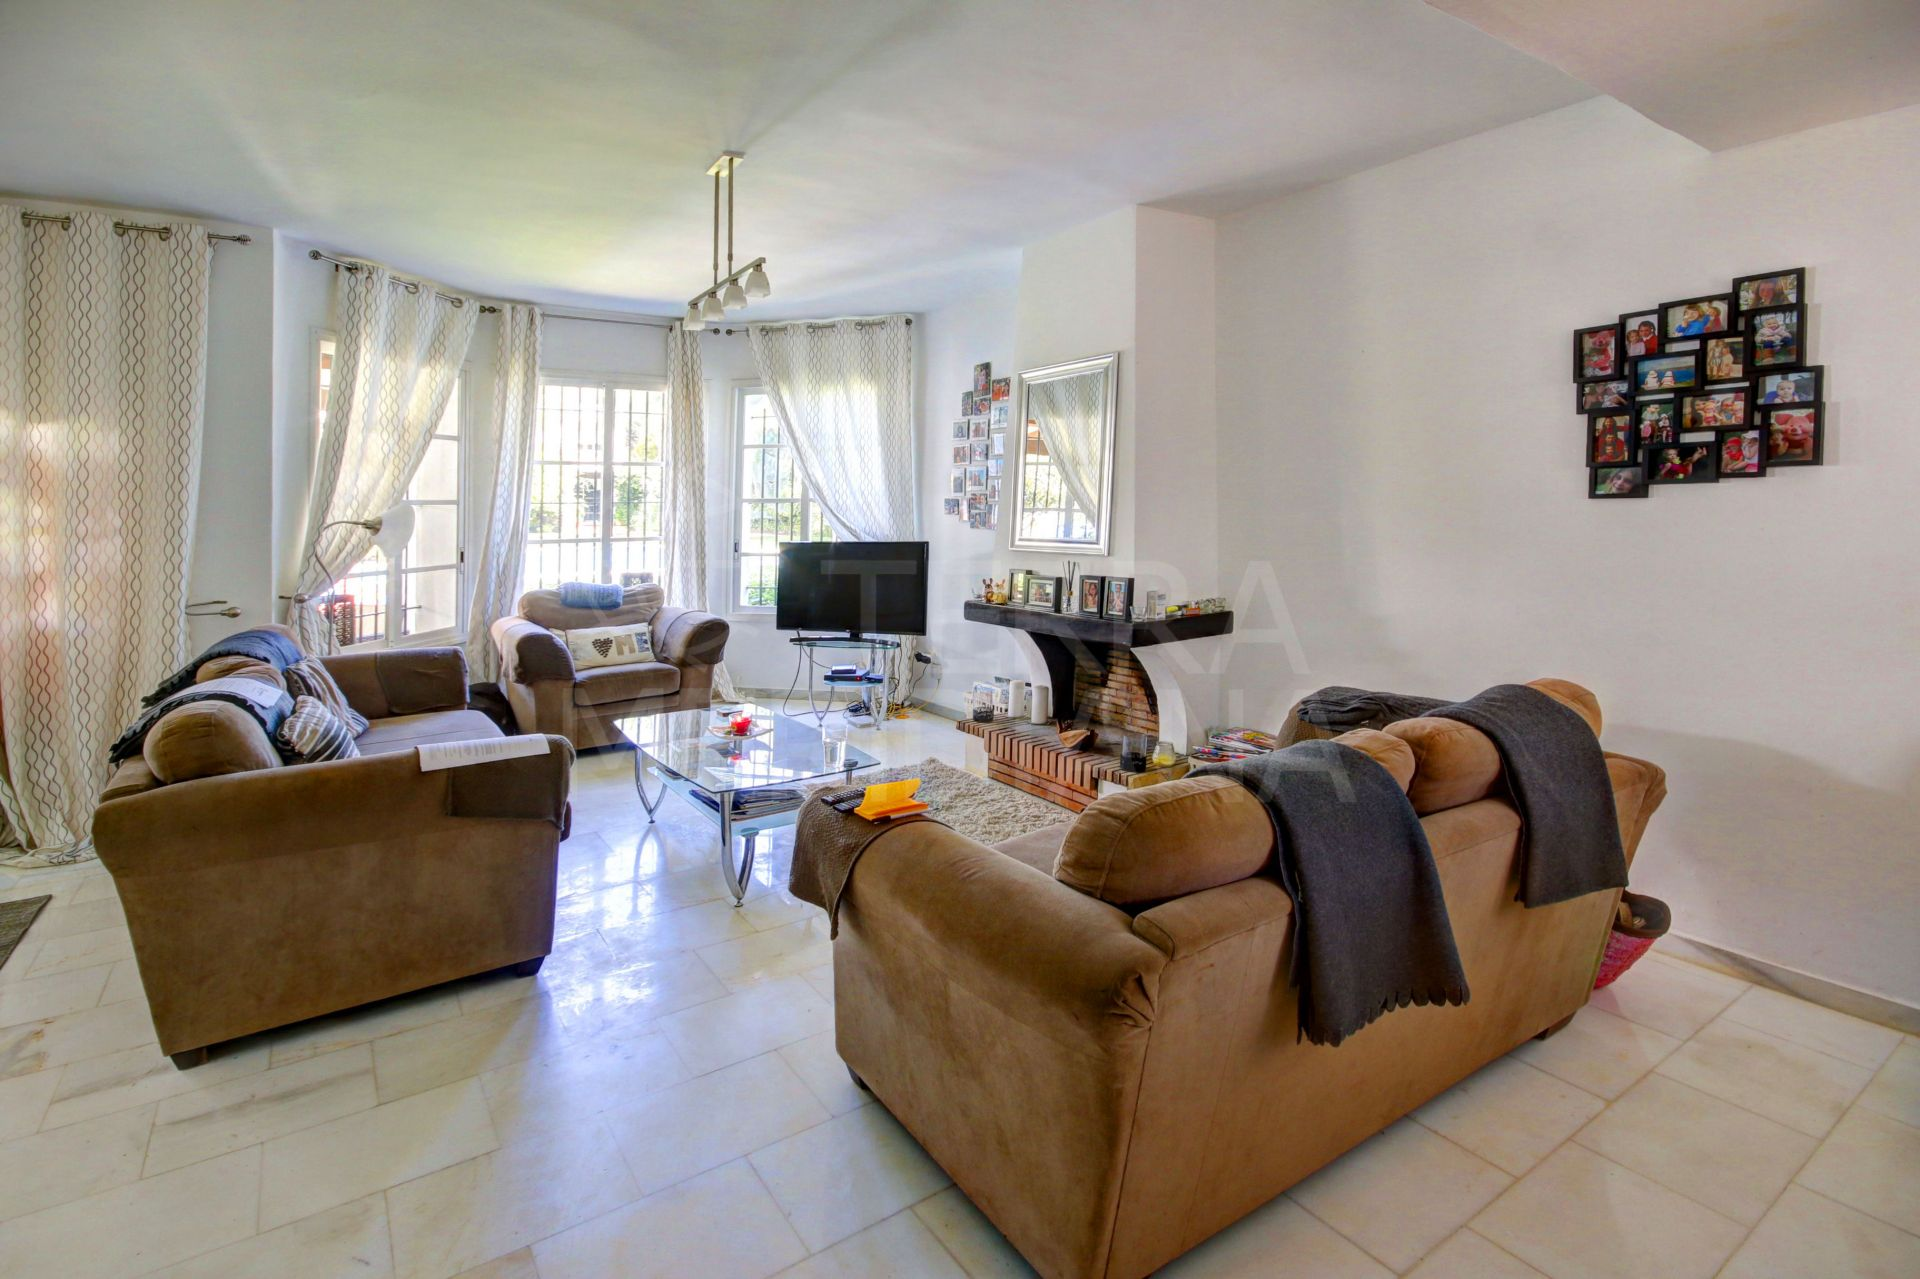 3 bedroom townhouse for sale in gated Nueva Andalucia community, Sol Europa